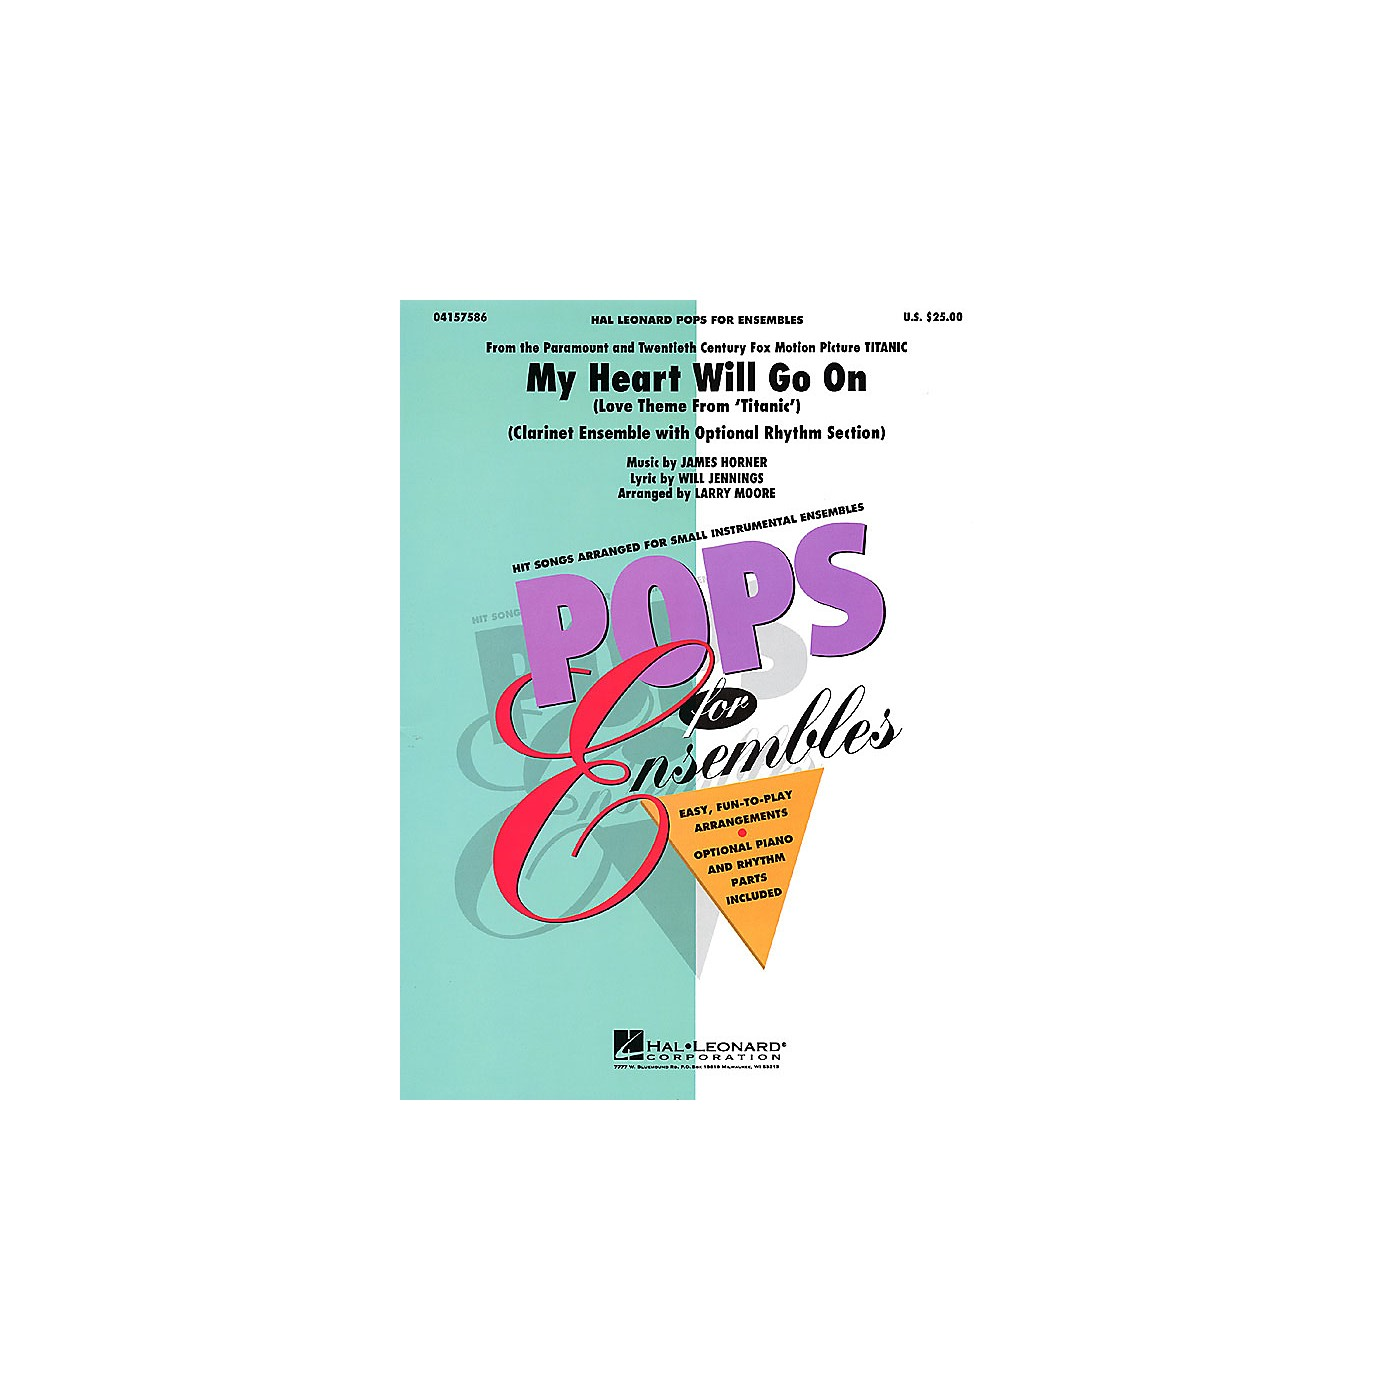 Hal Leonard My Heart Will Go On (Clarinet Ensemble (opt. rhythm section)) Concert Band Level 2-3 by Larry Moore thumbnail